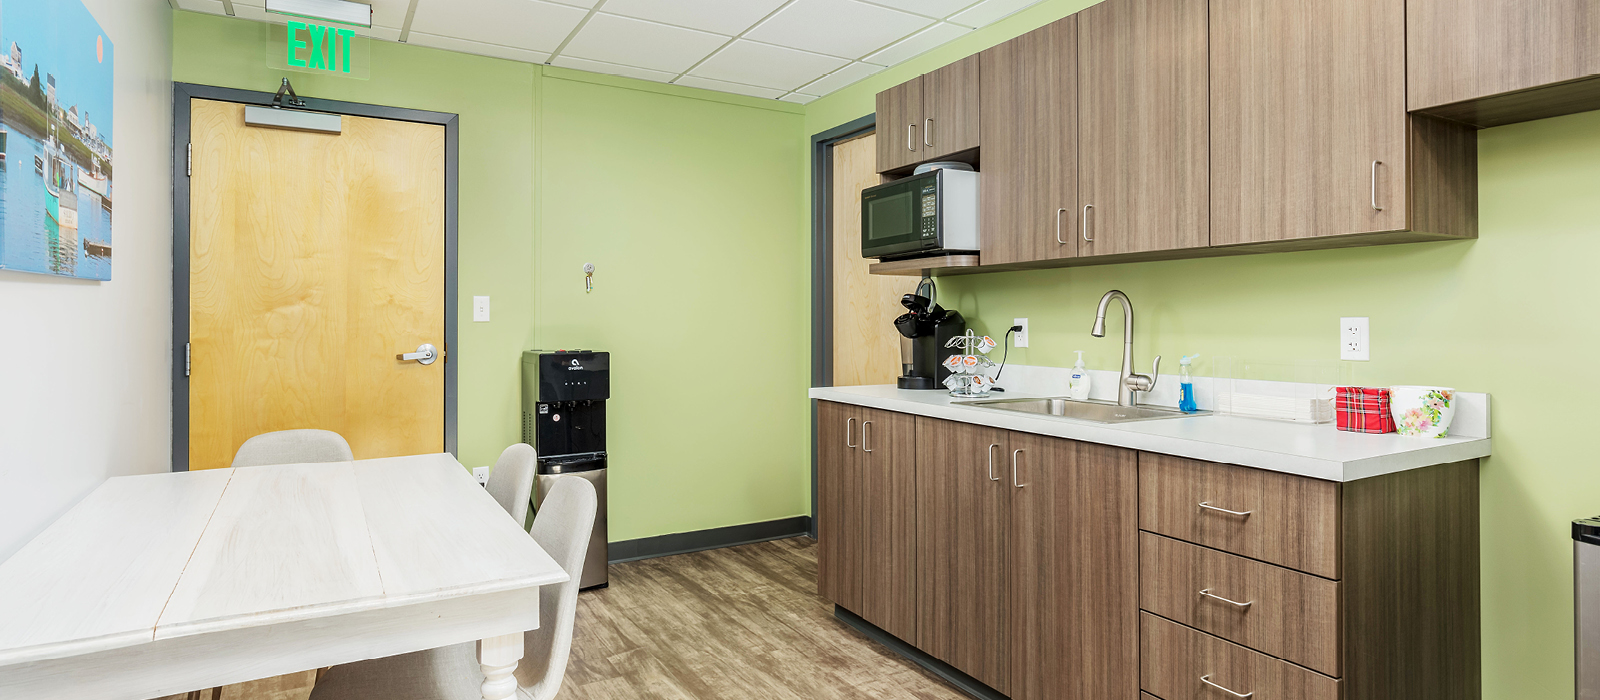 Scituate Family Dental staff lounge